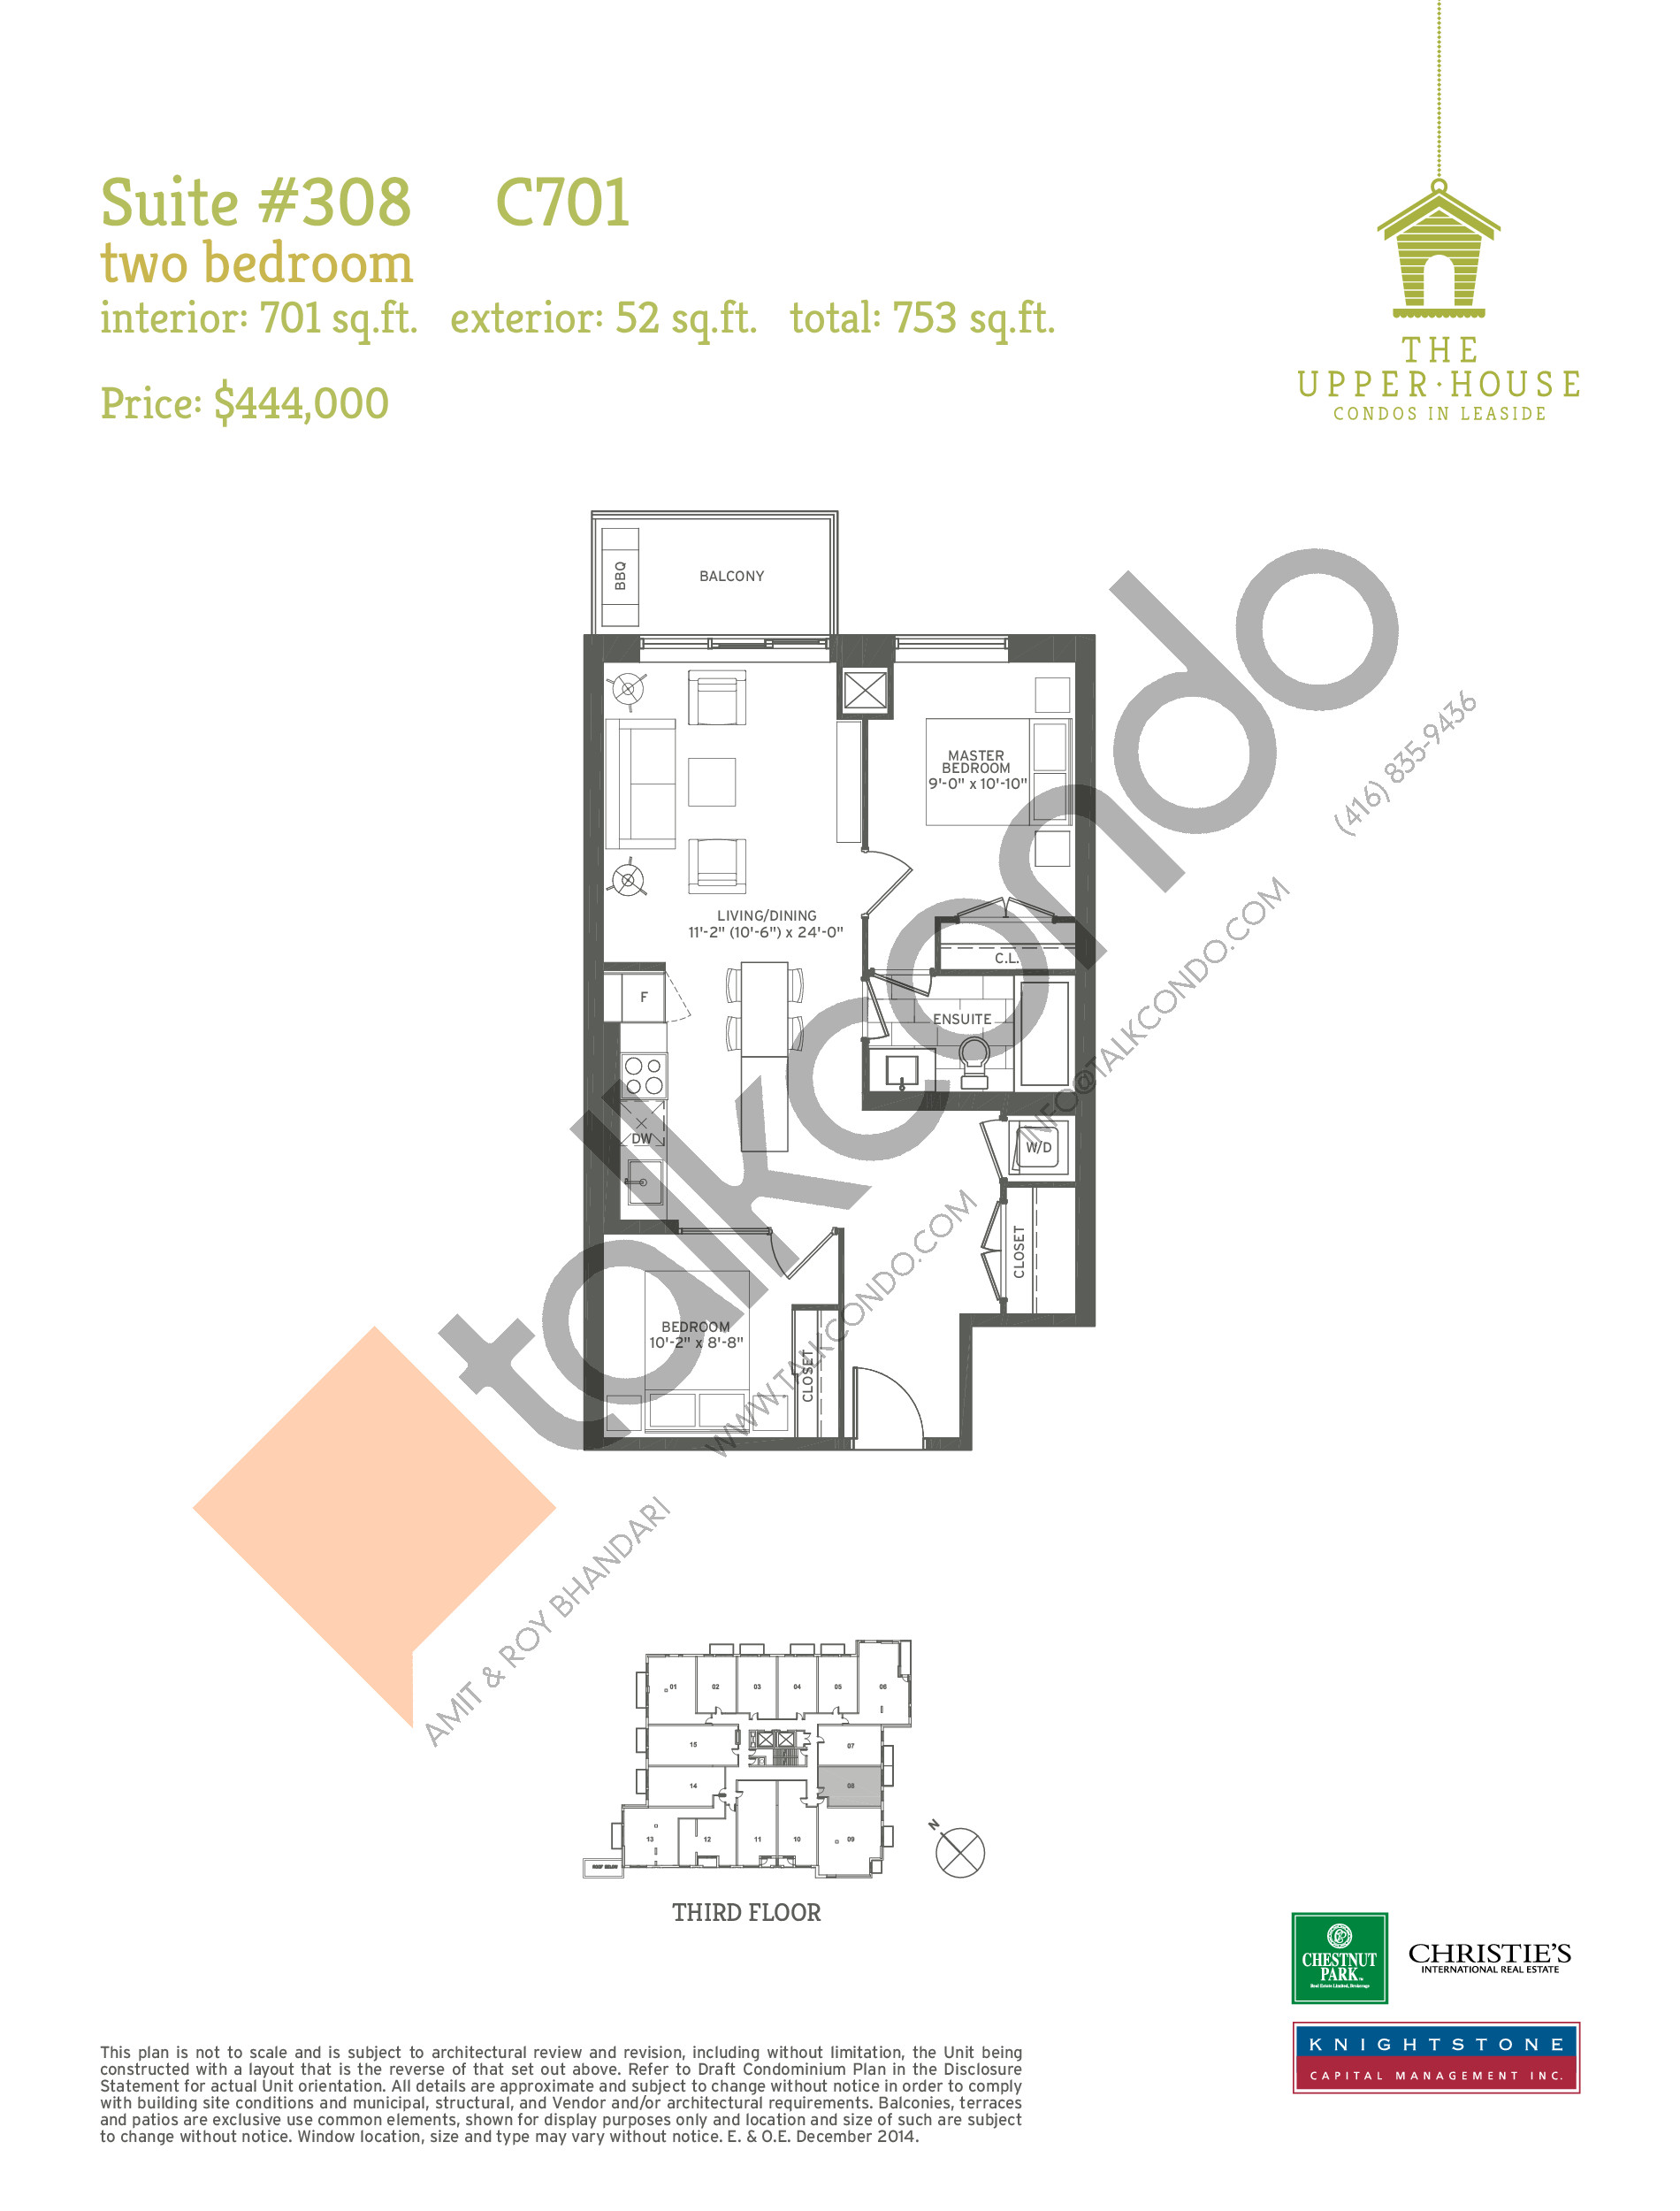 C701 Floor Plan at The Upper House Condos - 701 sq.ft